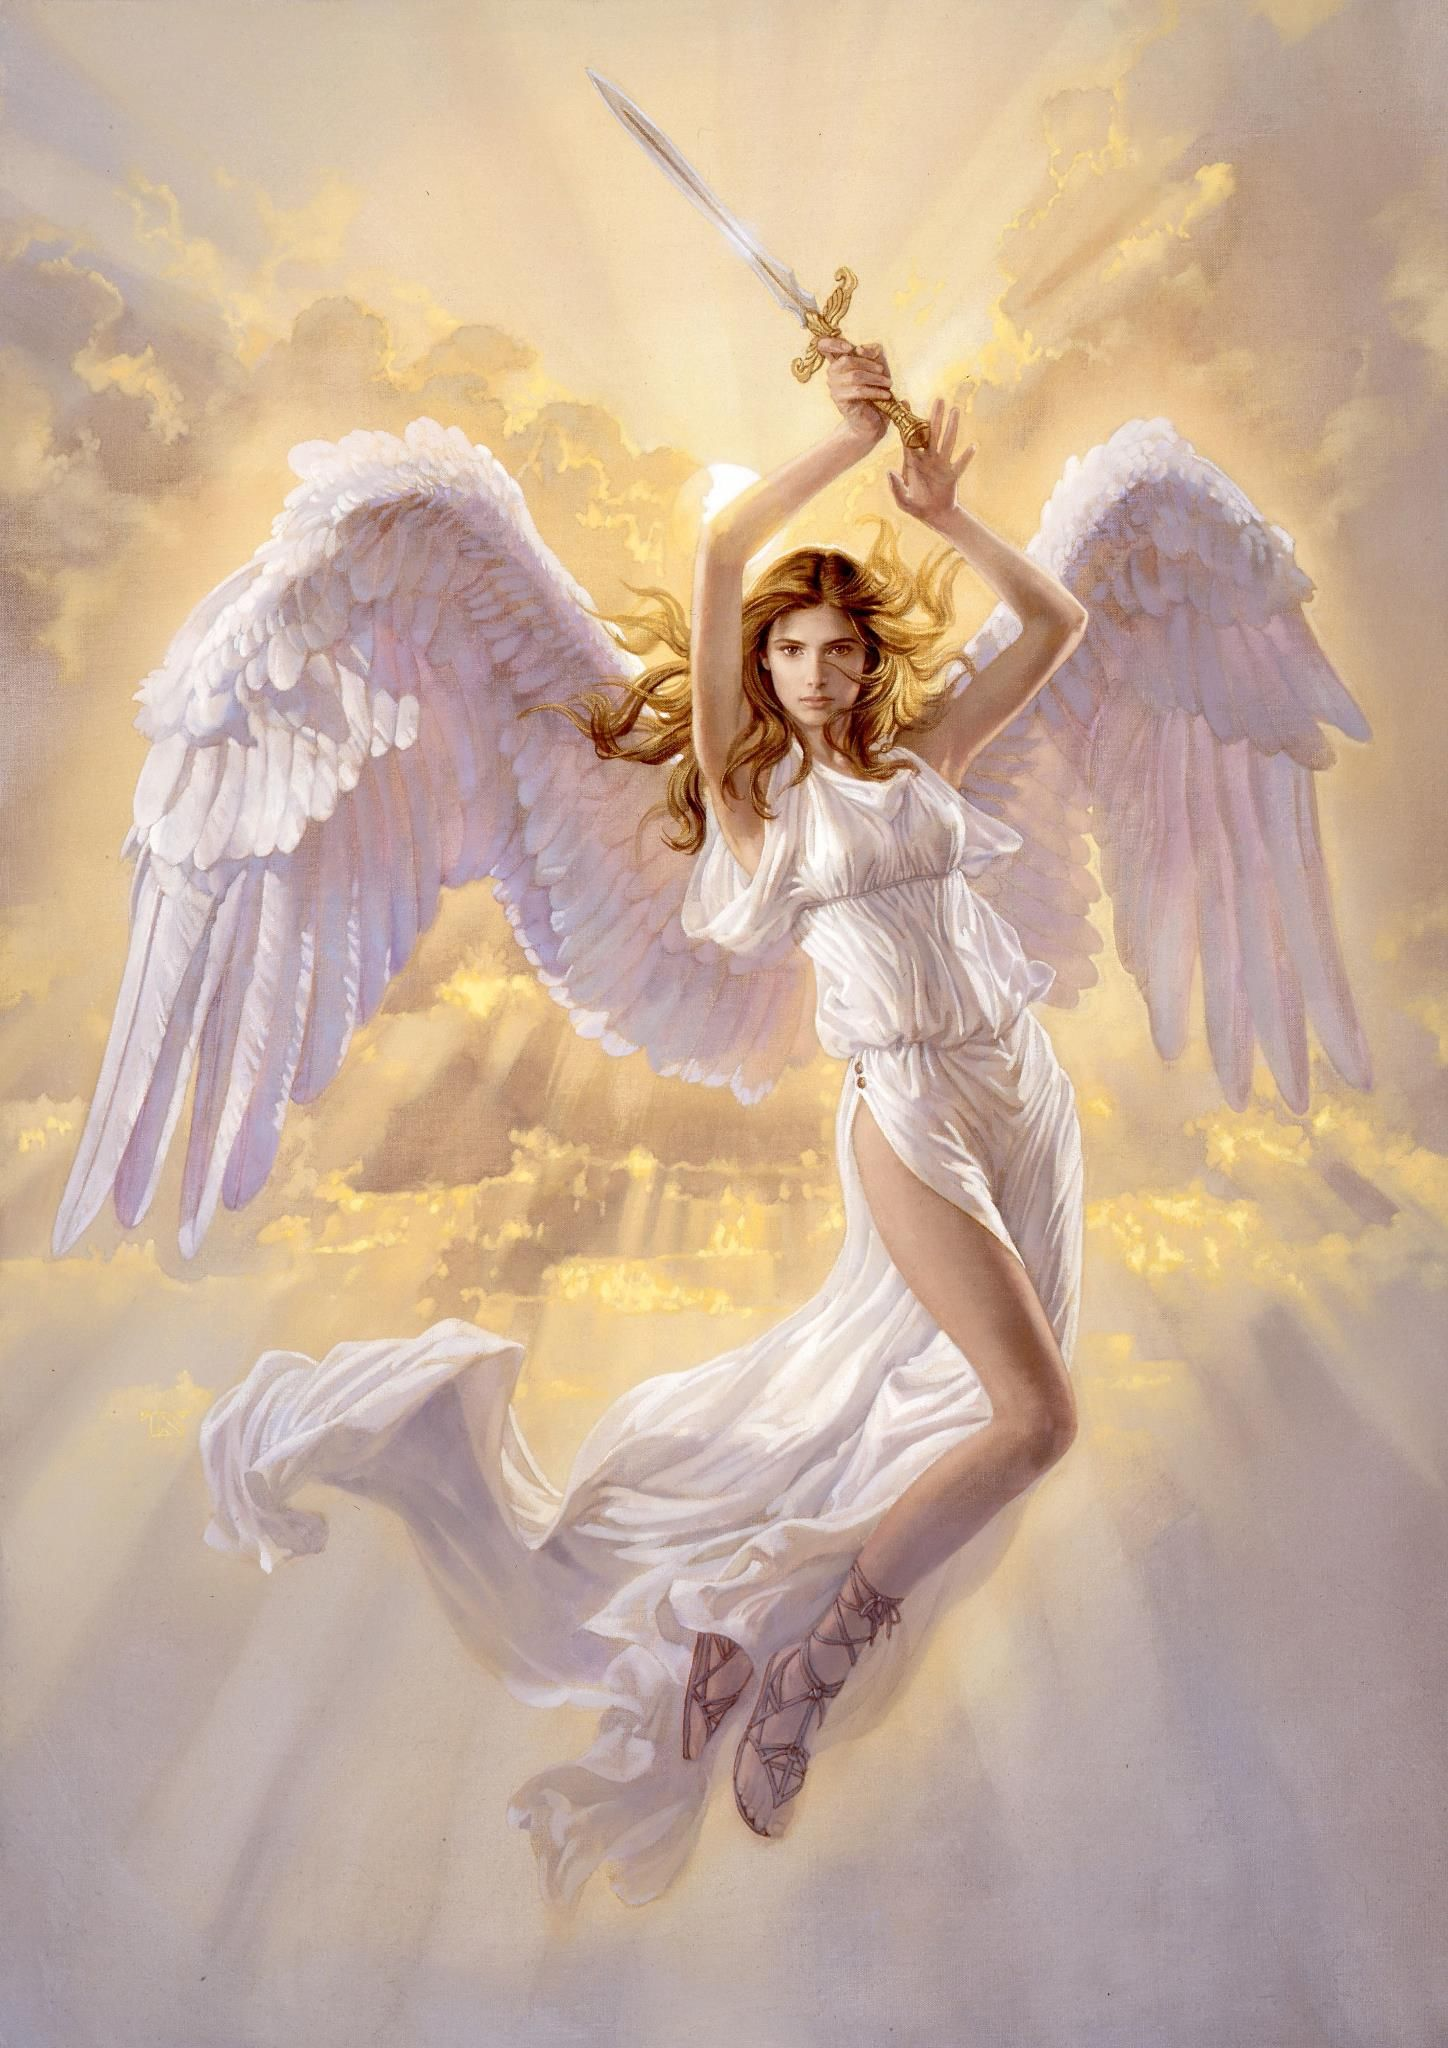 1000 images about angels on pinterest artworks wings and heavens